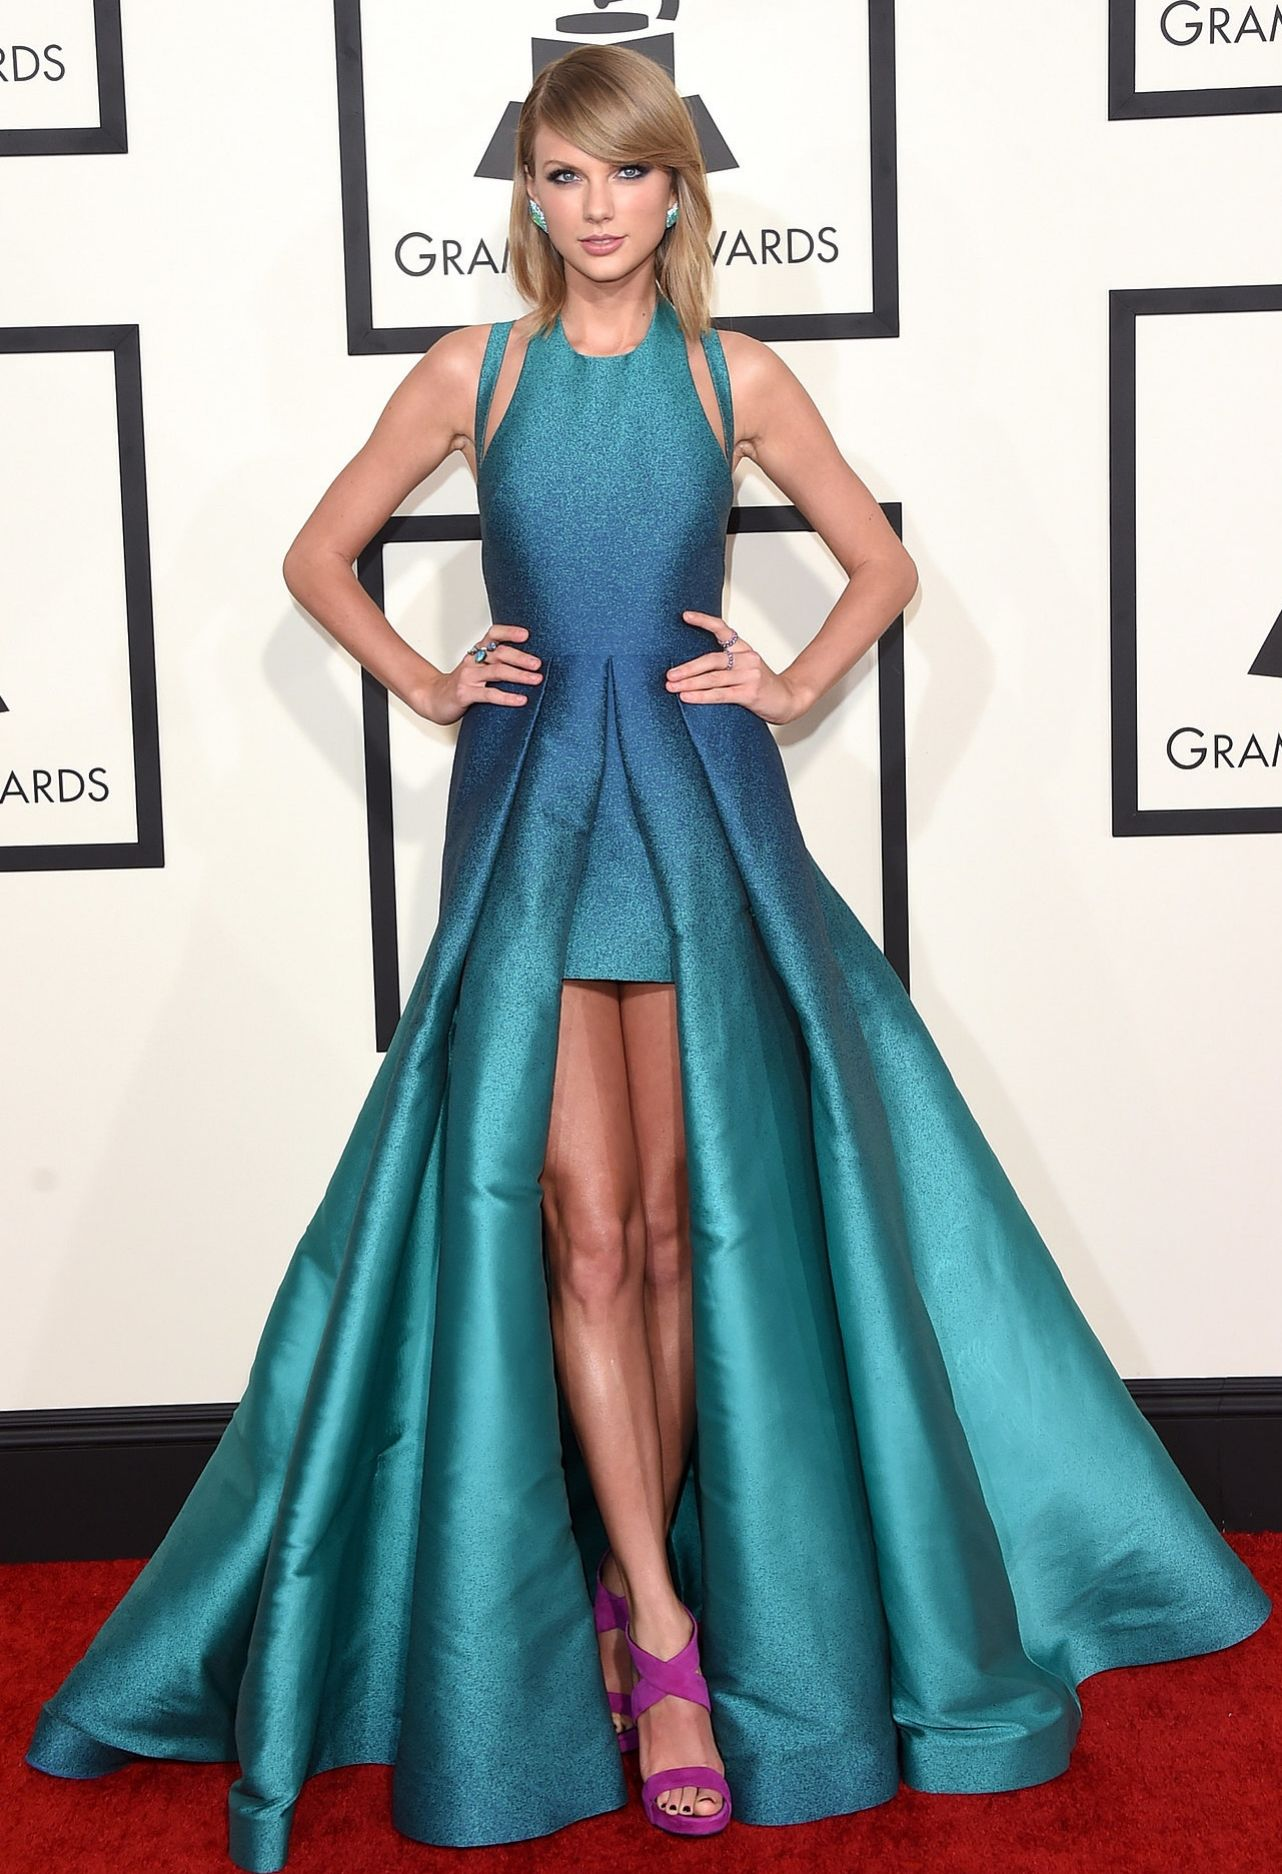 Poll Taylor Swift Looks Lovely In A Layered Dress At The Grammy Awards Taylor Swift Dress Grammy Dresses Taylor Swift Style